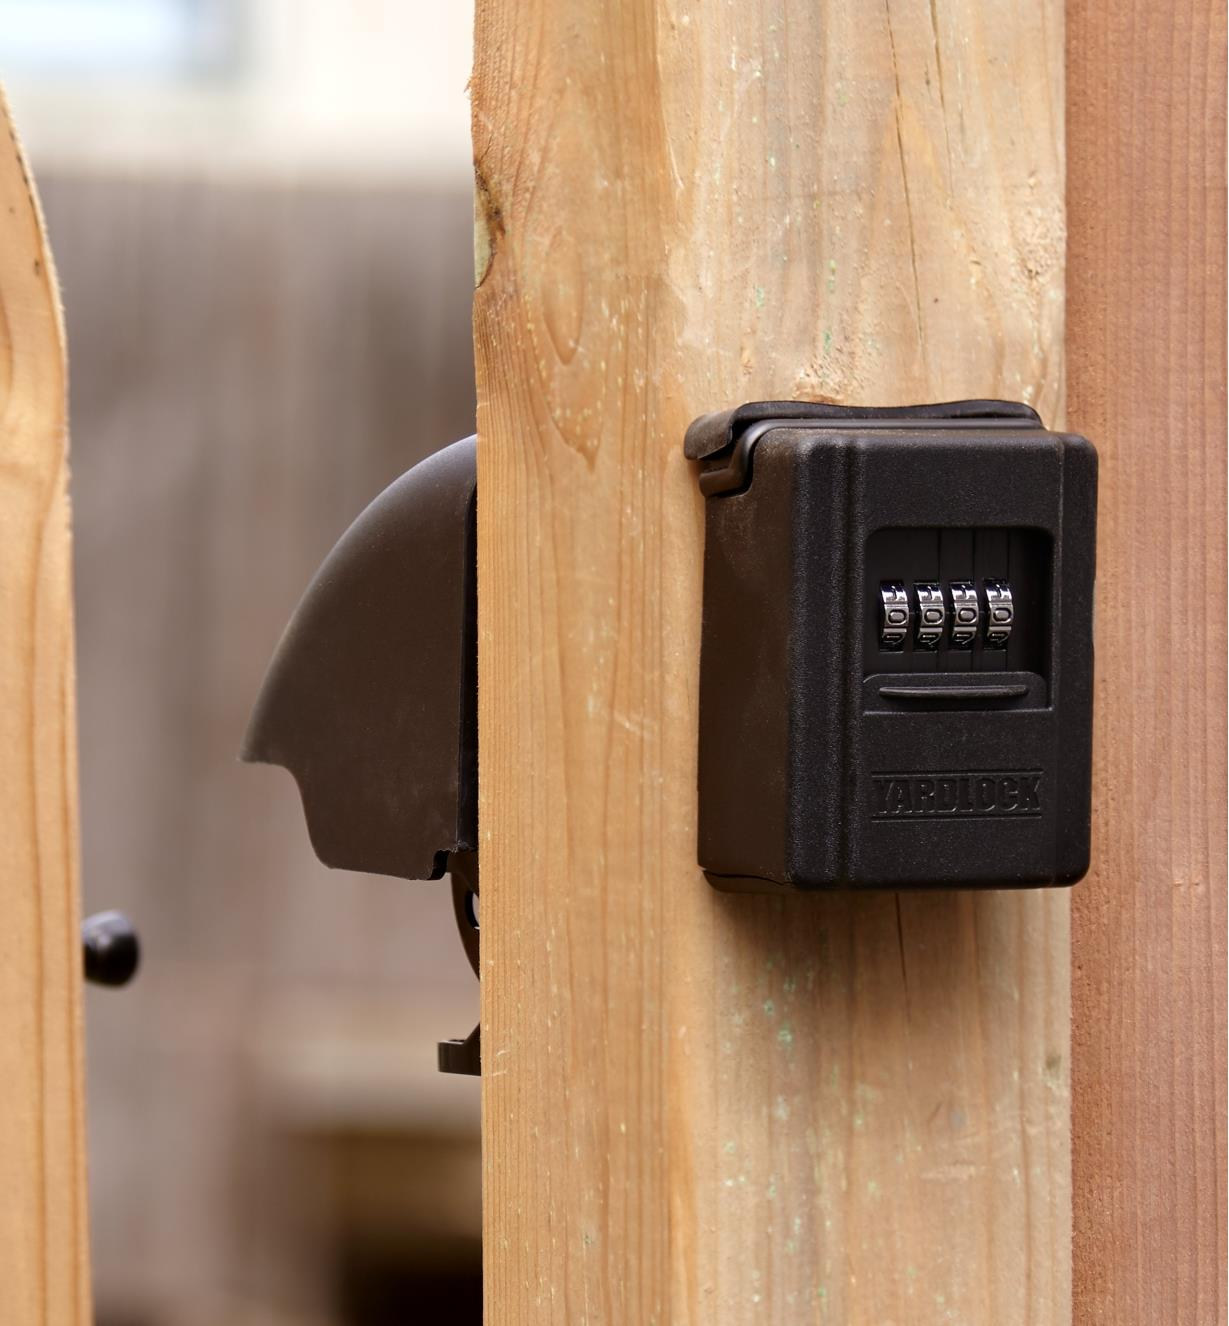 Keyless gate lock on street side of open gate with latch assembly partially visible